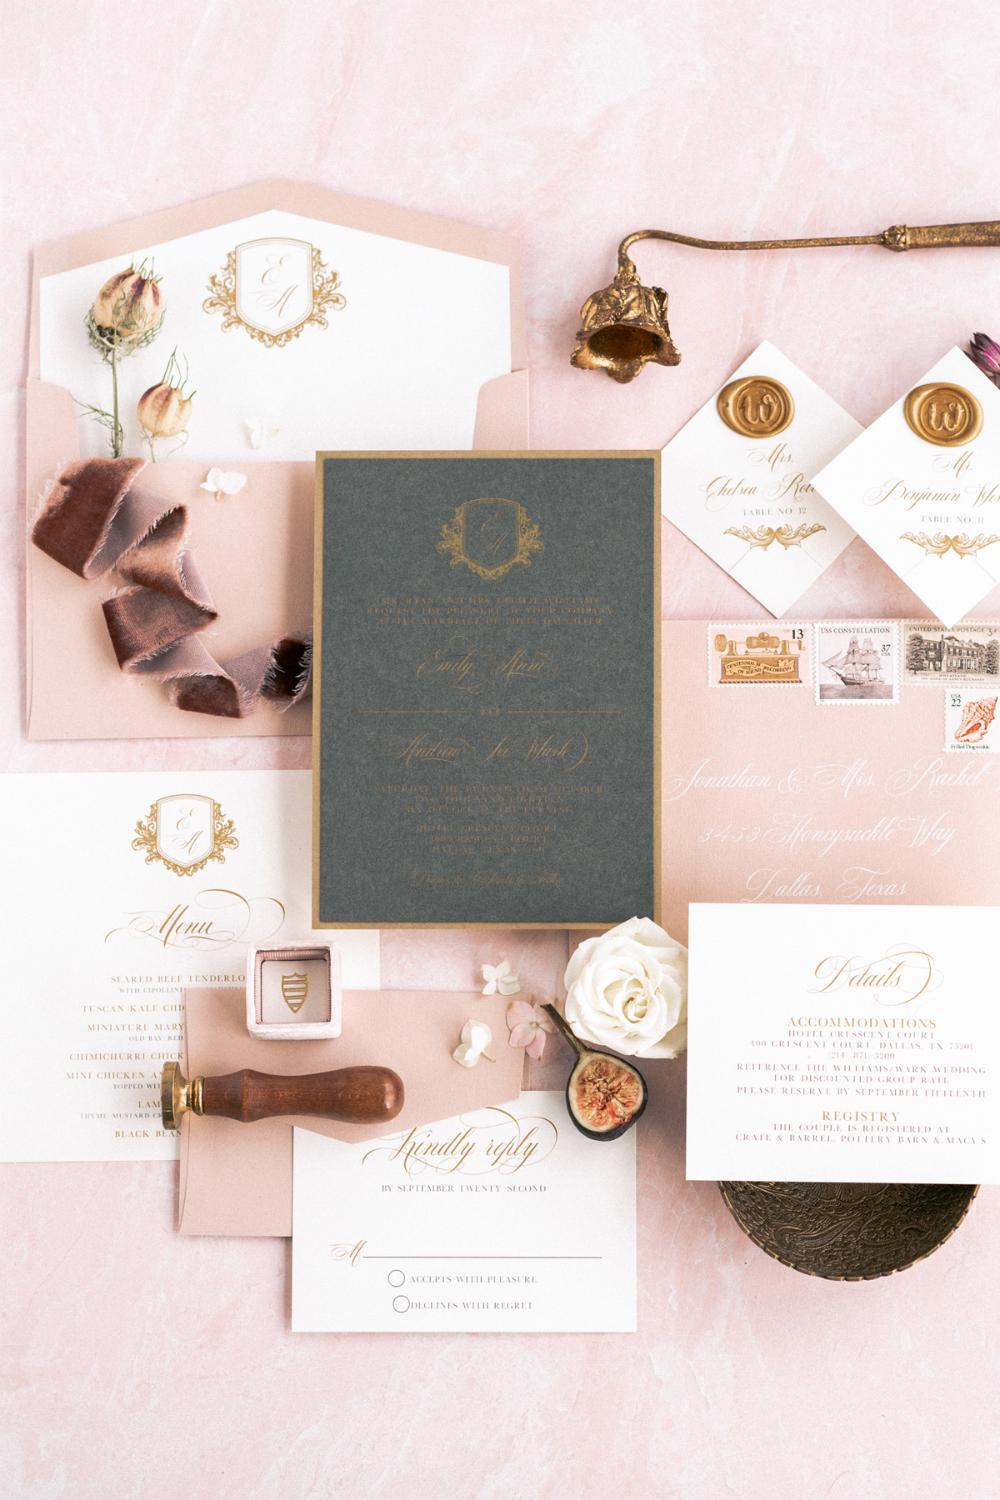 Modern Elegance Formal Charcoal Gray Gold And Pink Blush Layered Monogram Crest Wedding Invitation: Cly Modern Elegant Wedding Invitations At Websimilar.org